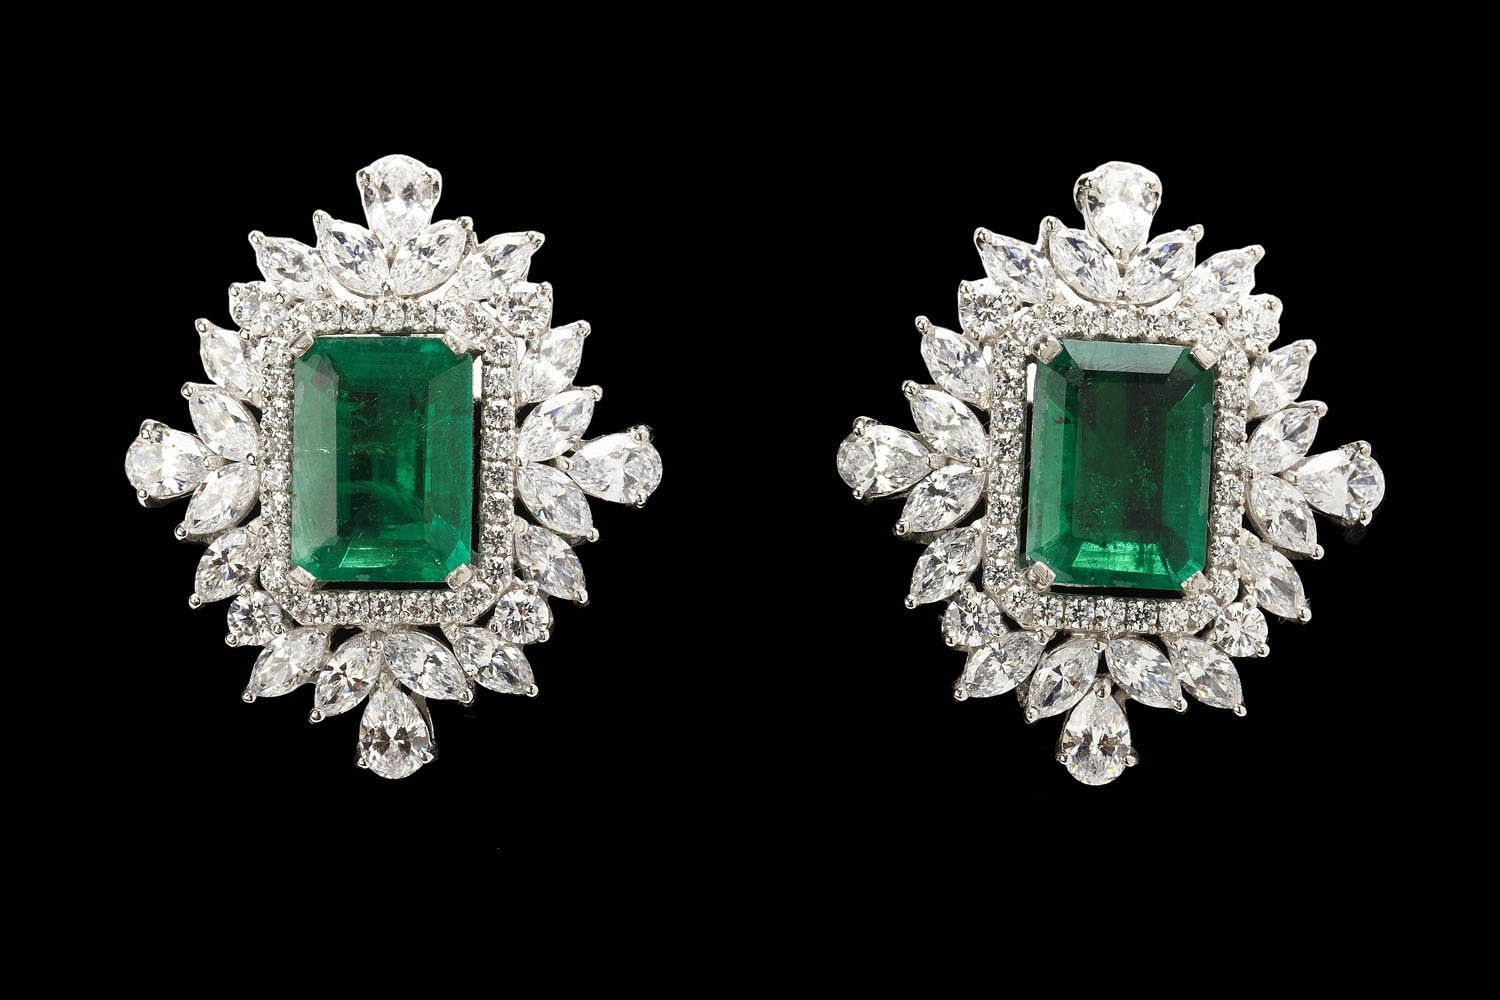 Emerald Stone Earrings - See more stunning jewelry at StellarPieces.com!